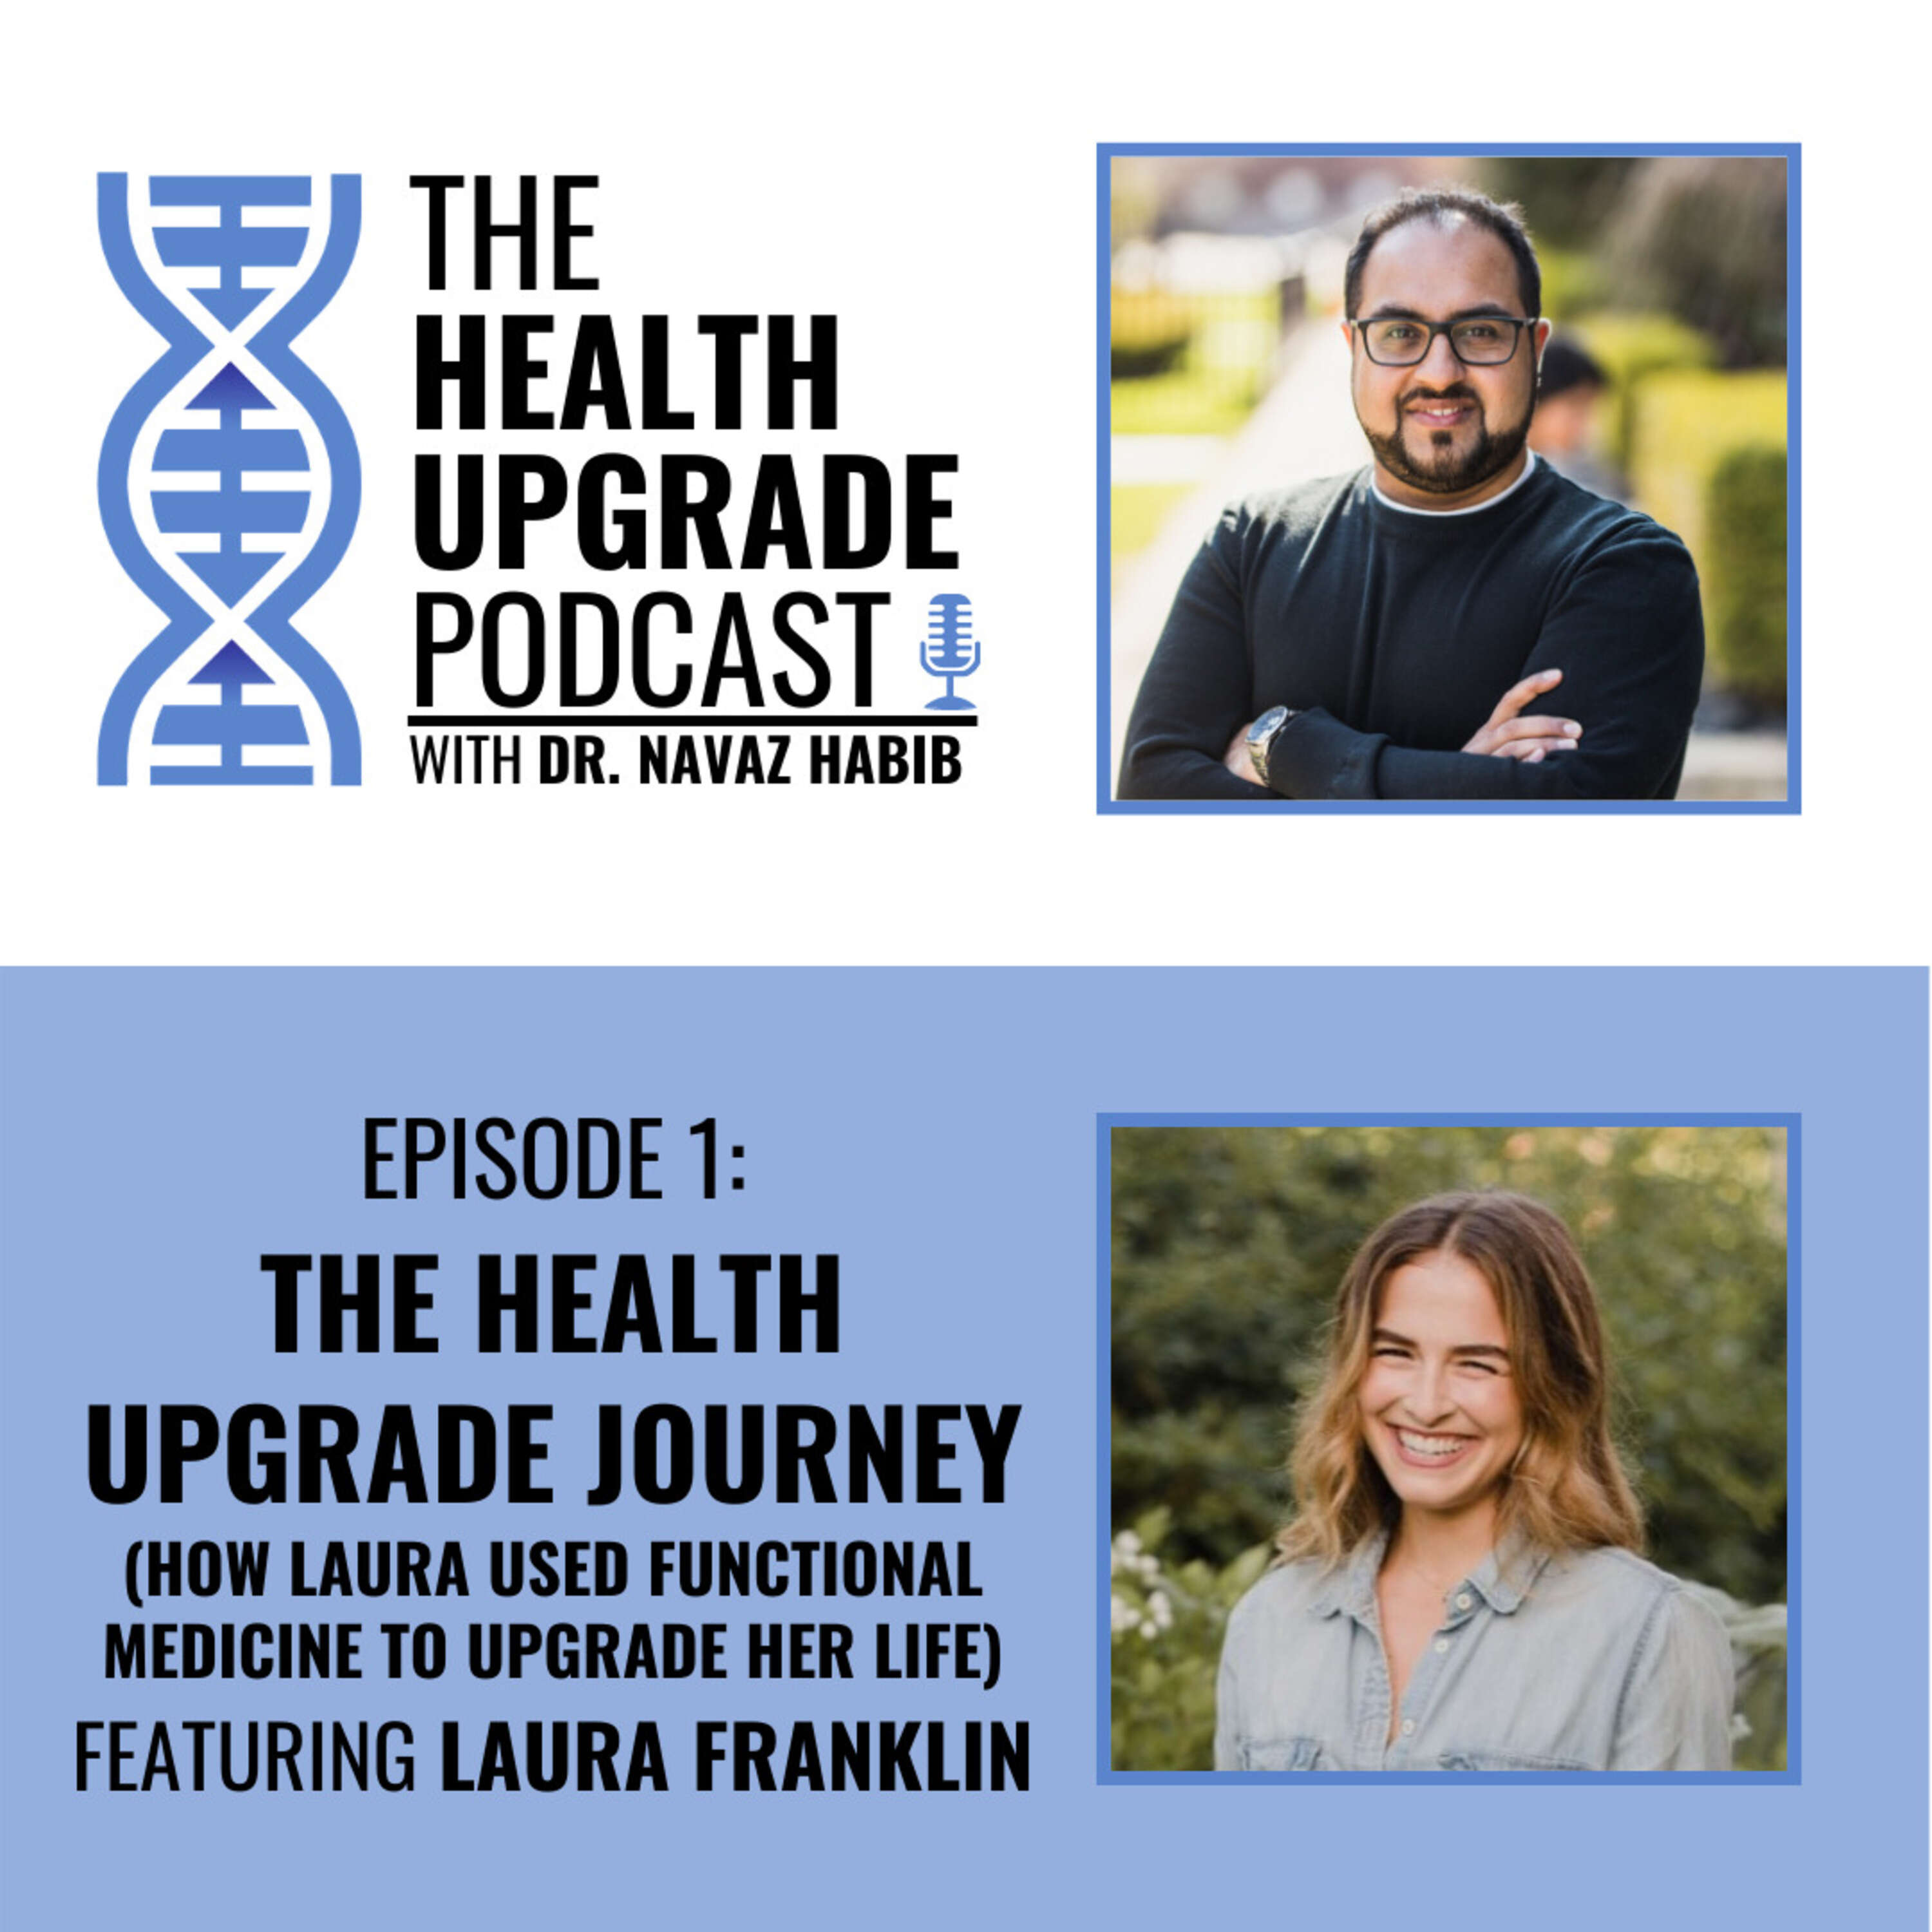 The Health Upgrade Journey - How Laura Franklin used Functional Medicine to Upgrade her Life